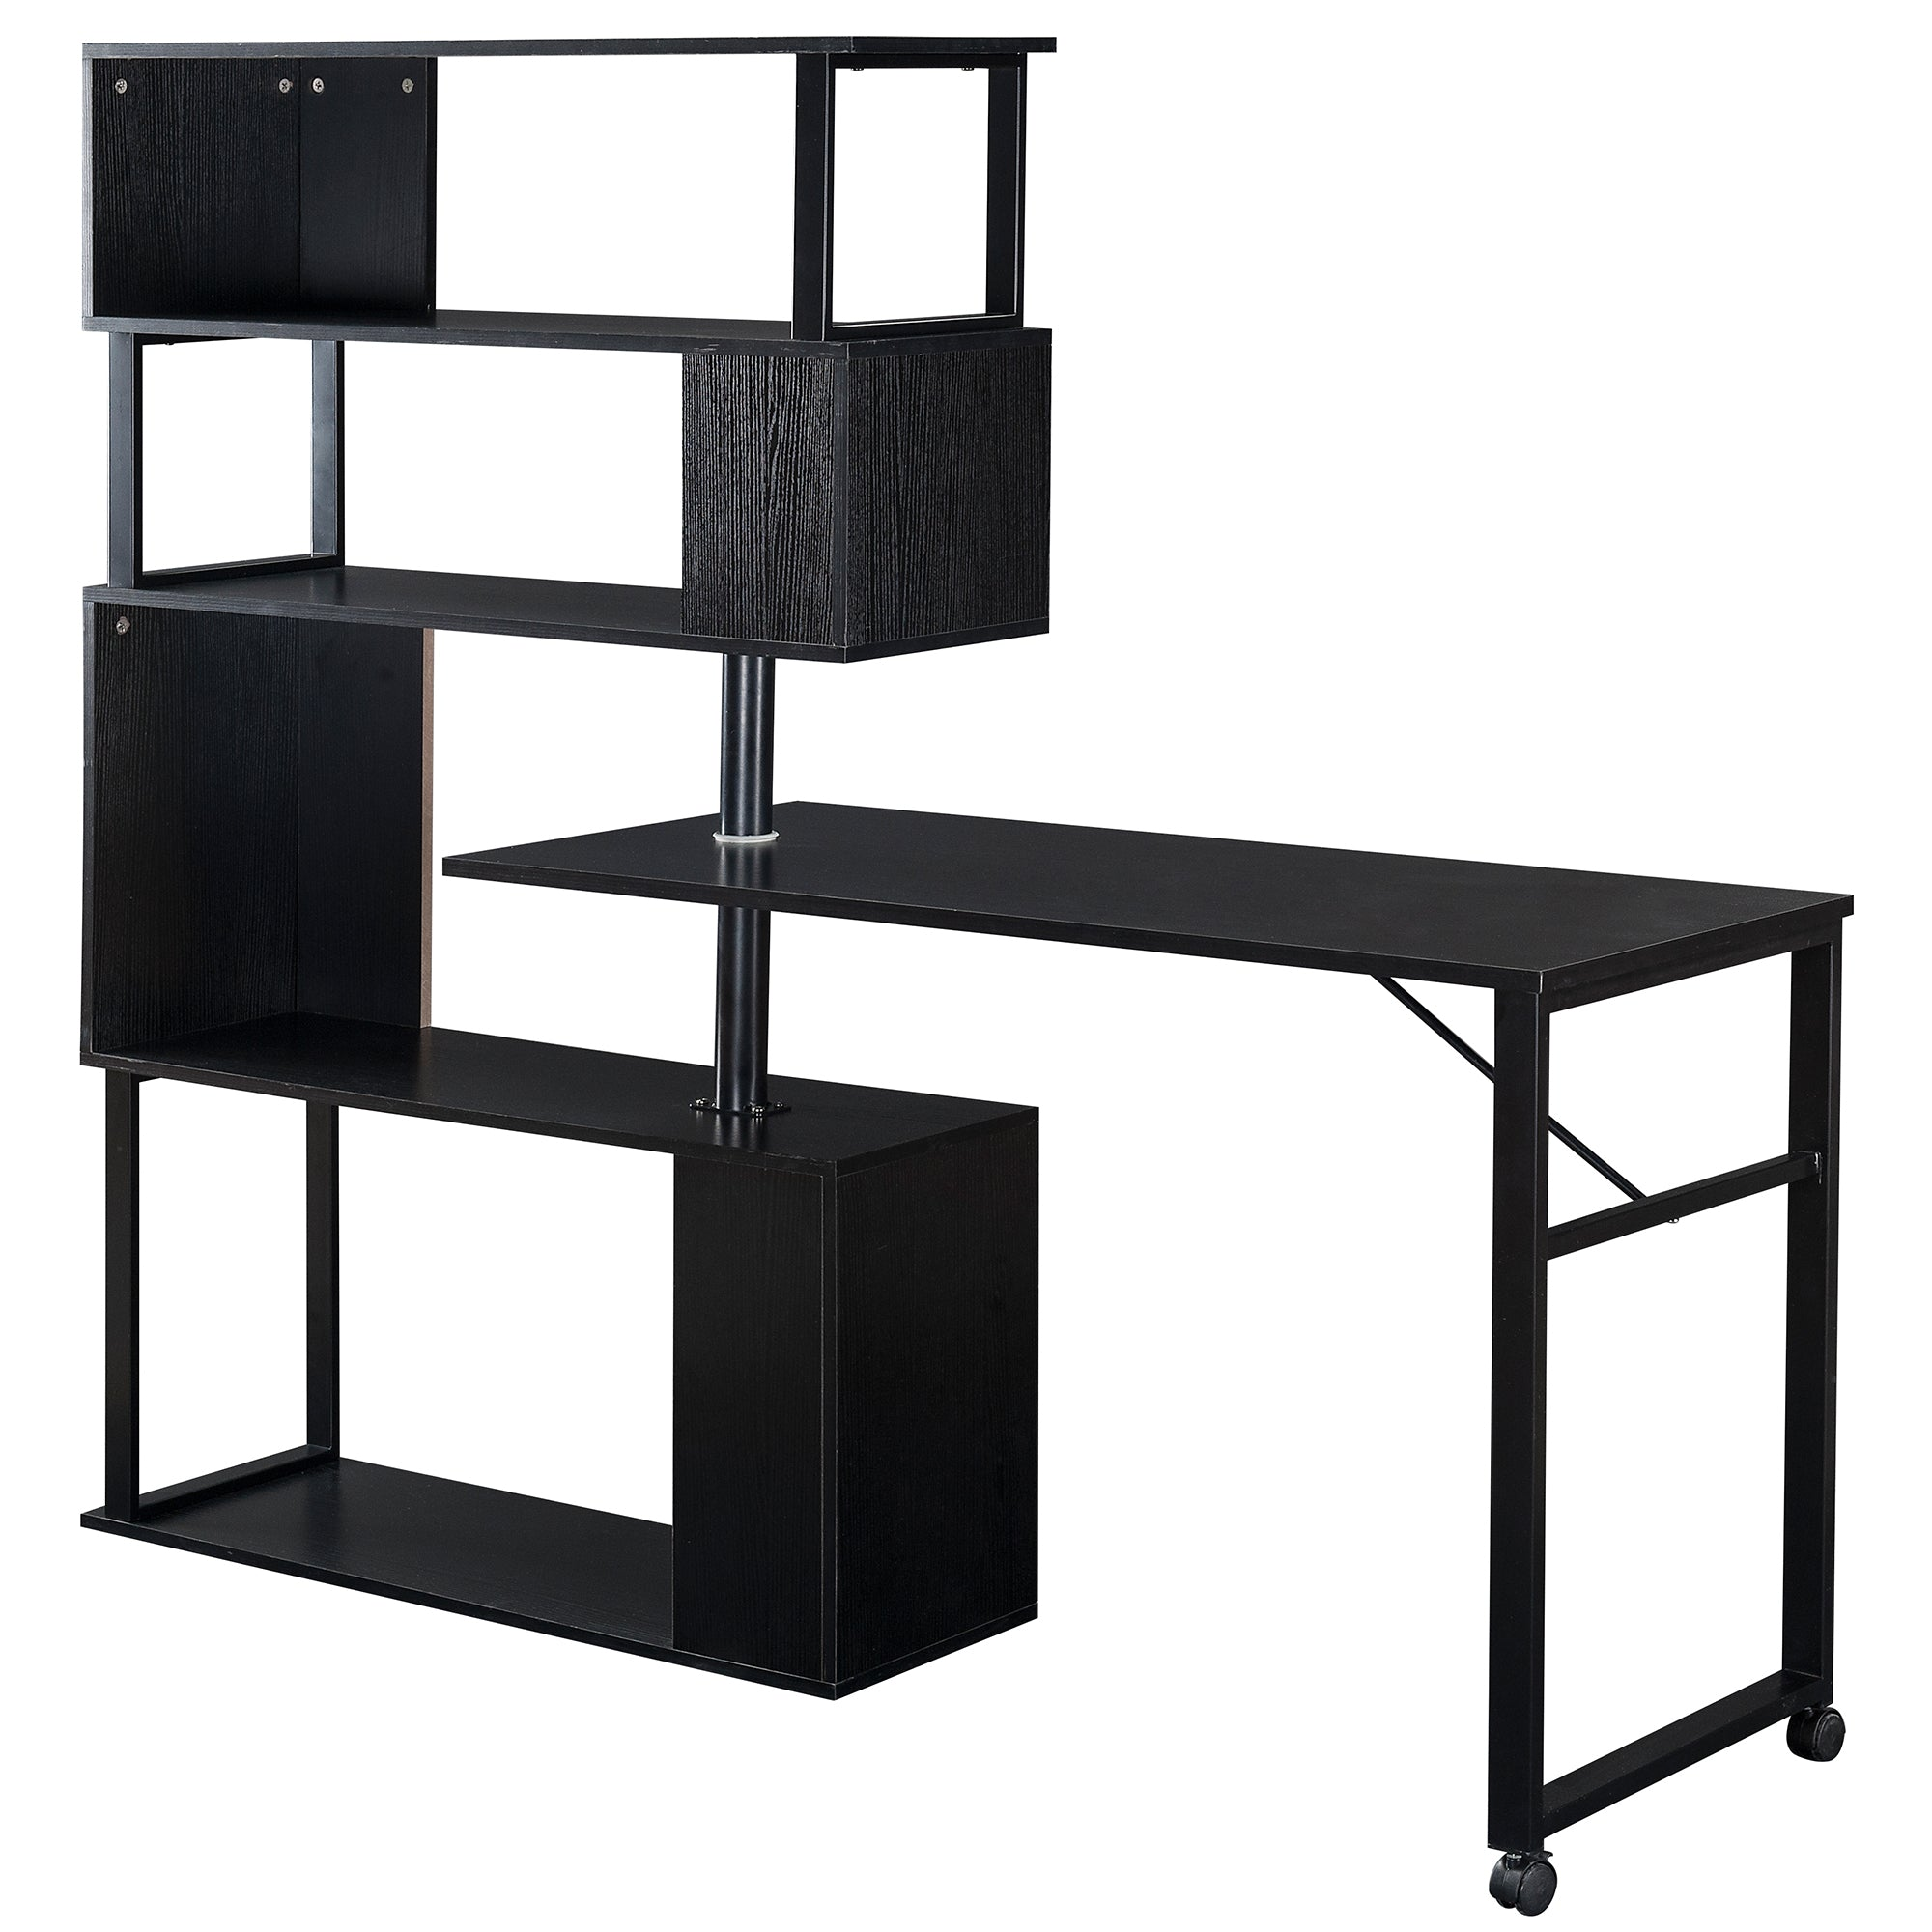 L-Shaped Corner Computer Table With 5-Story Bookshelf